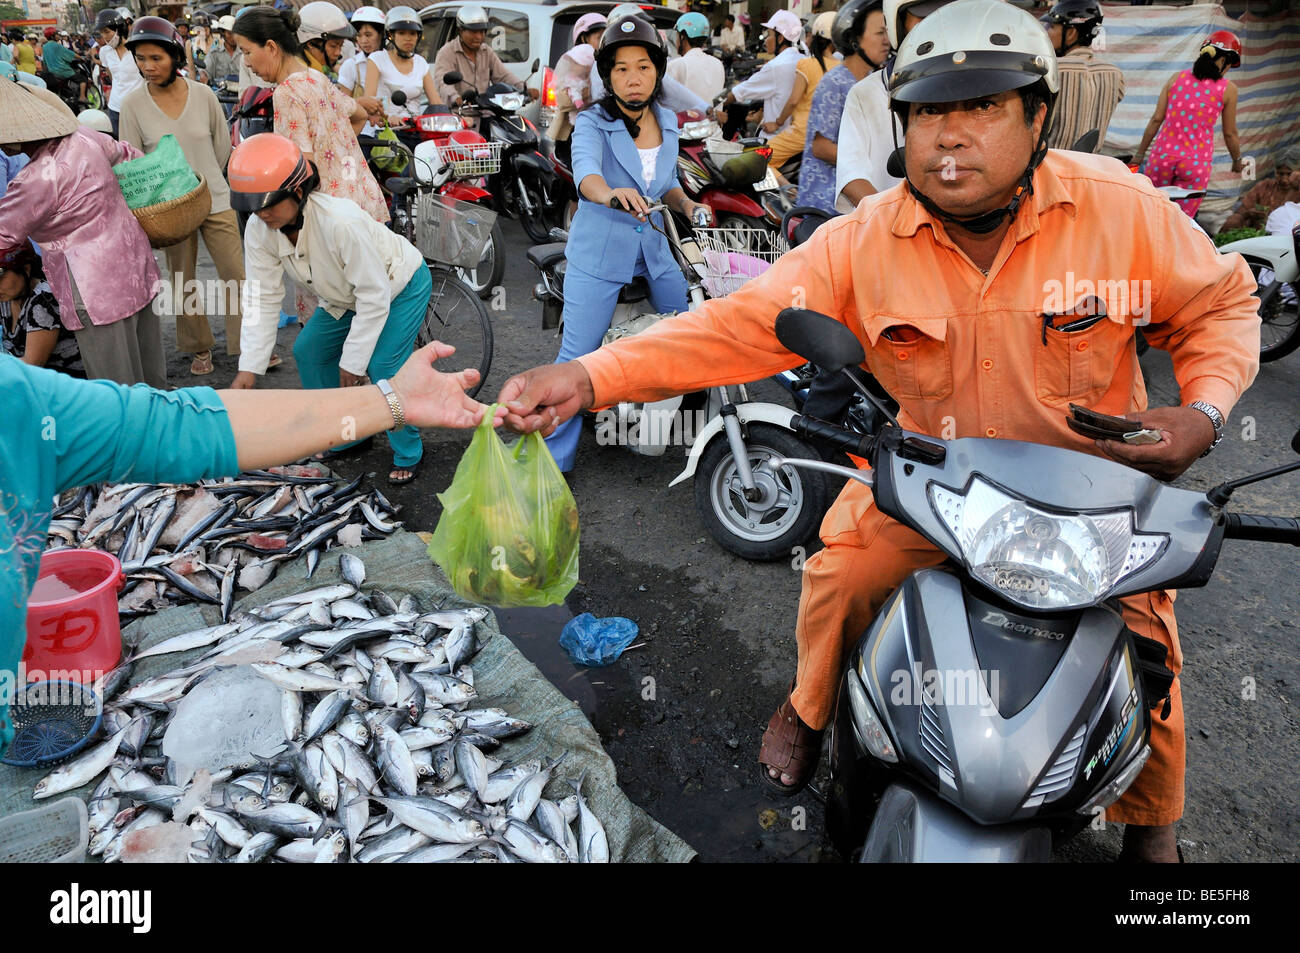 Man on scooter buys at the fish market, Vinh Longh, Mekong Delta, Vietnam, Asia - Stock Image